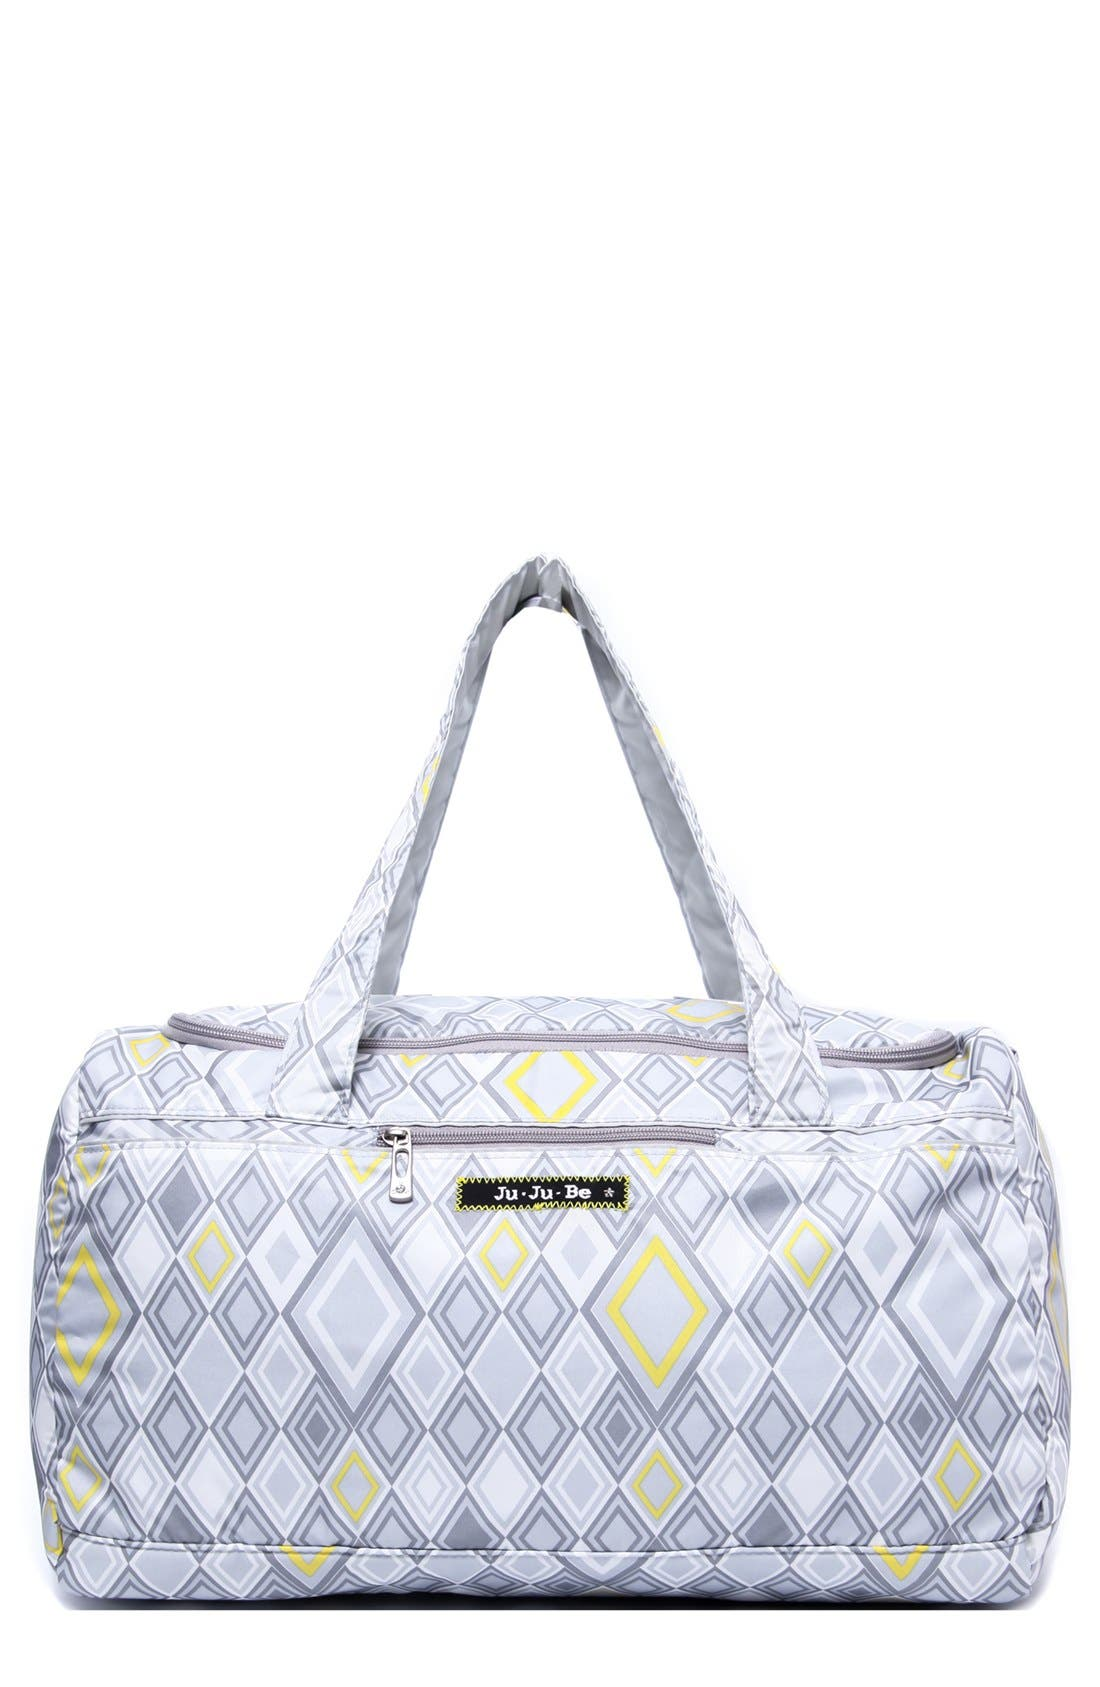 'Starlet' Travel Diaper Bag,                             Main thumbnail 4, color,